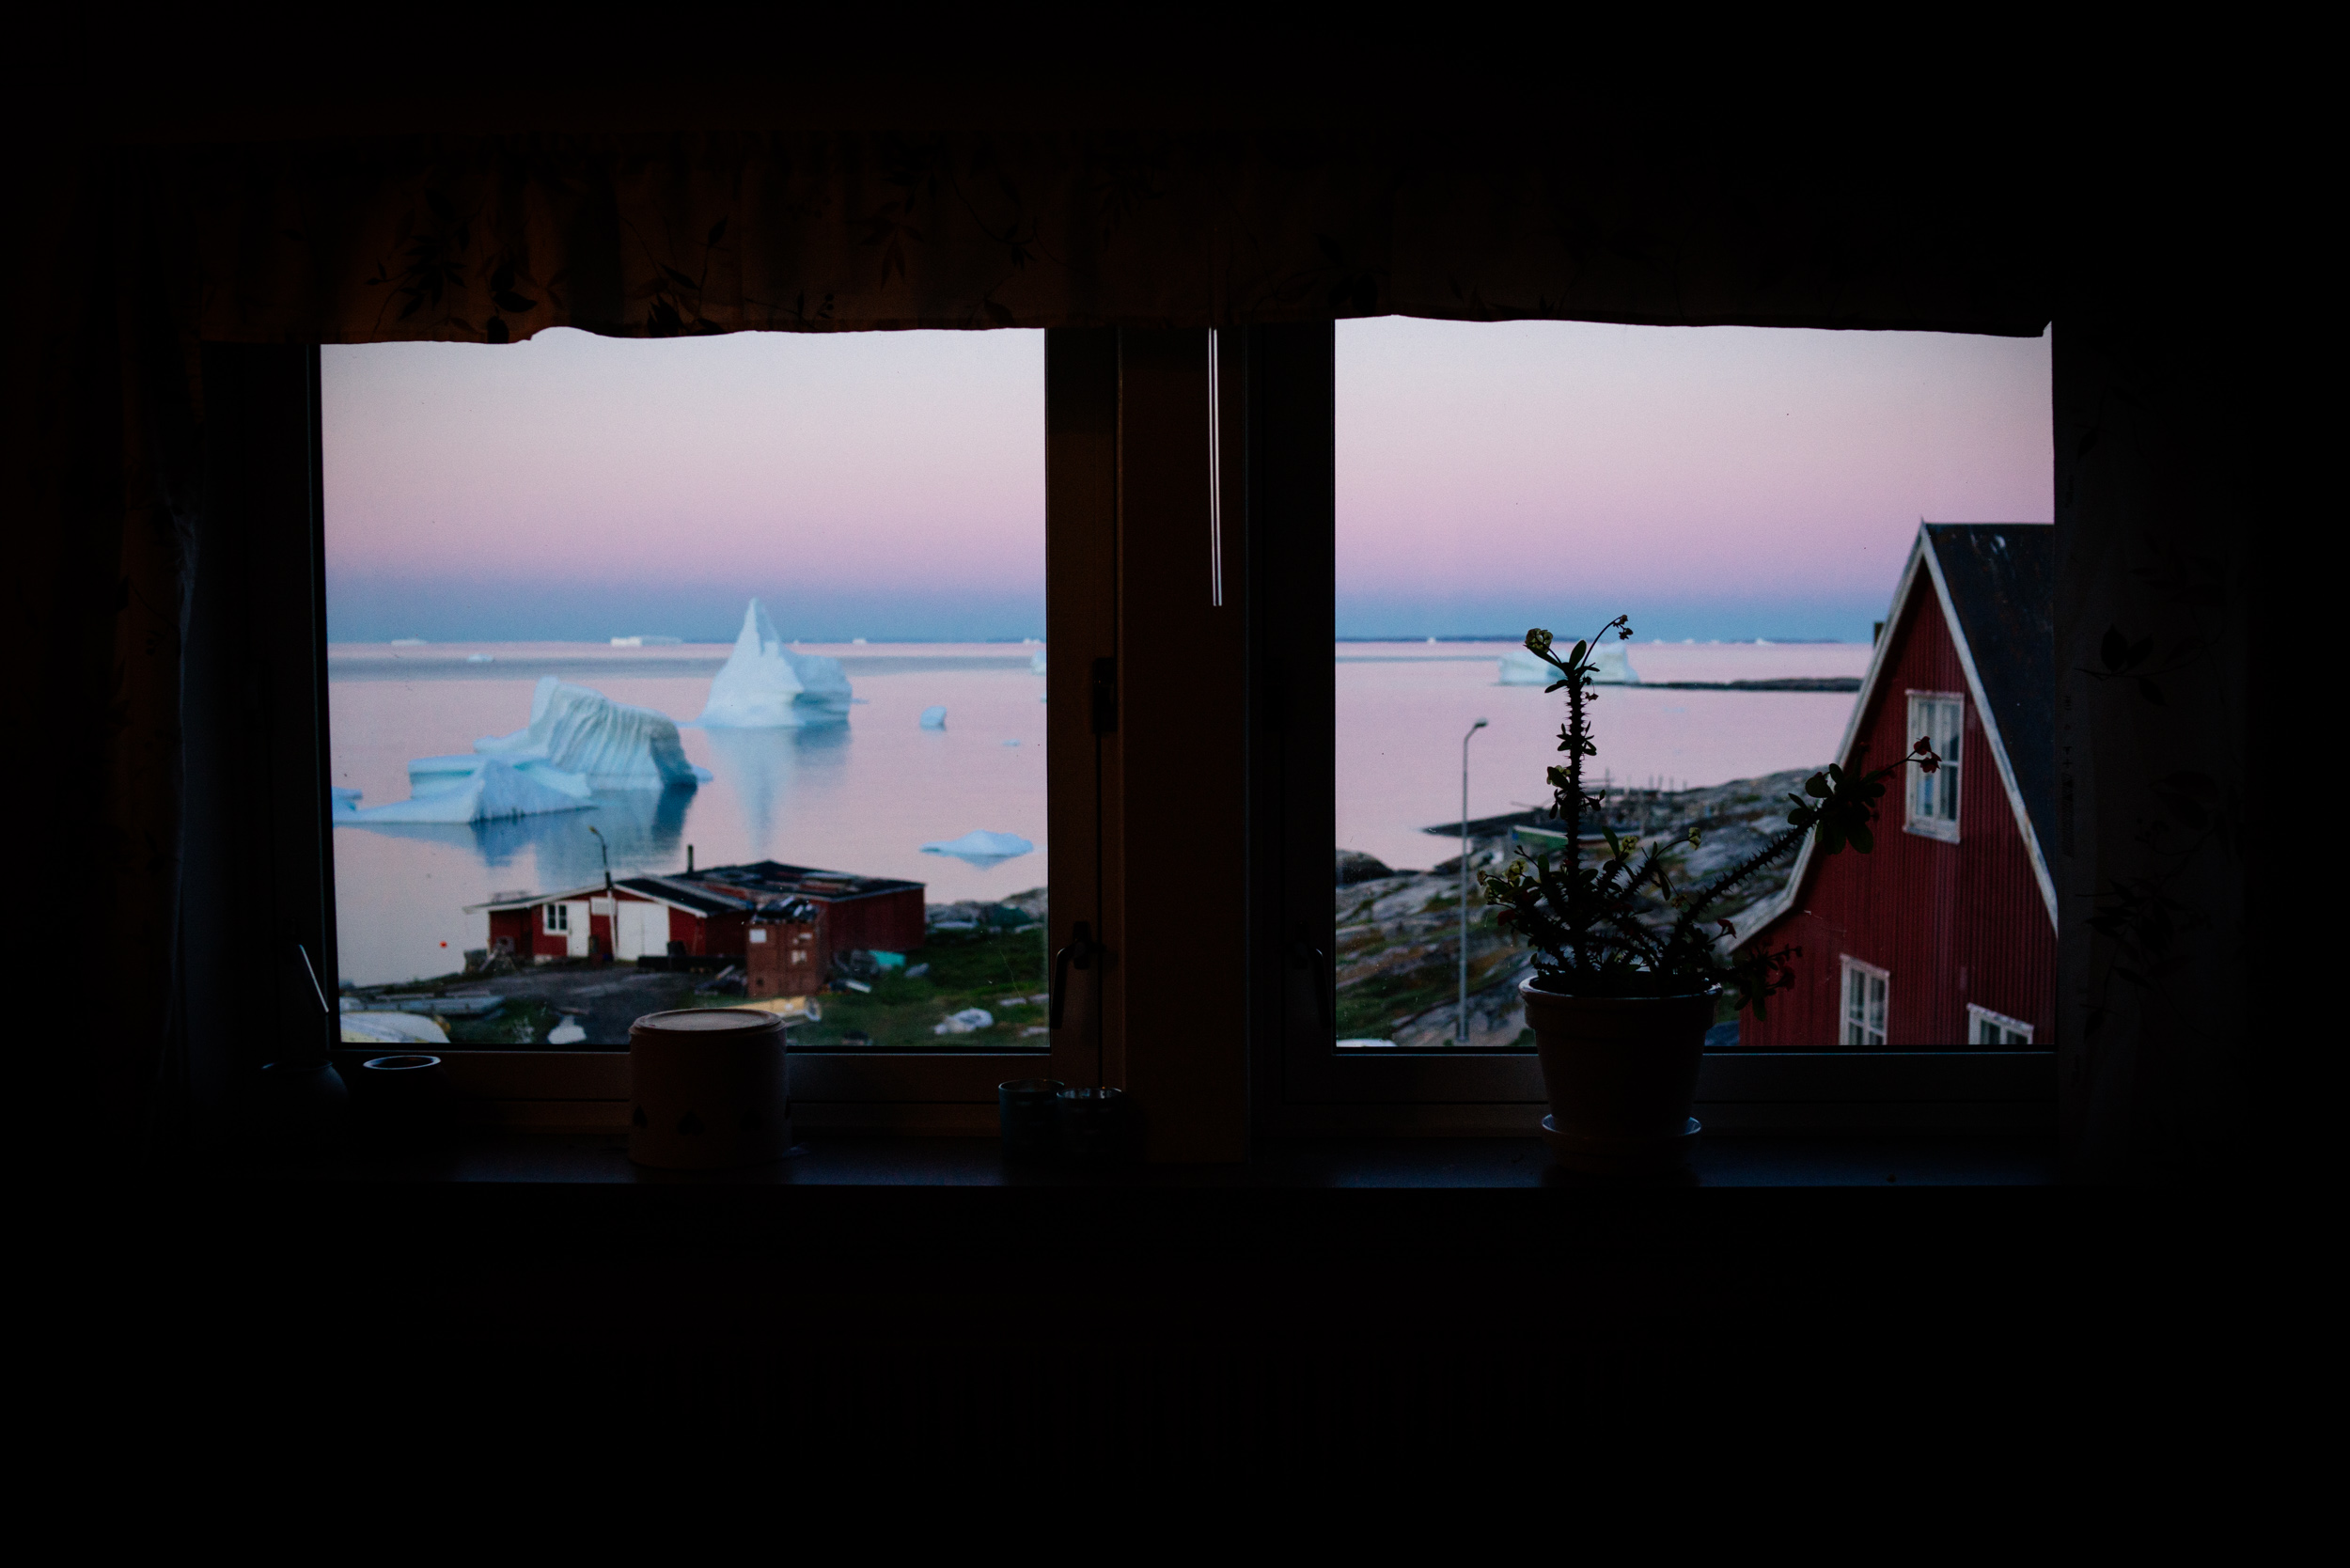 The most ethereal view I've witnessed in all of my travels, framed by the living room window of our Airbnb.